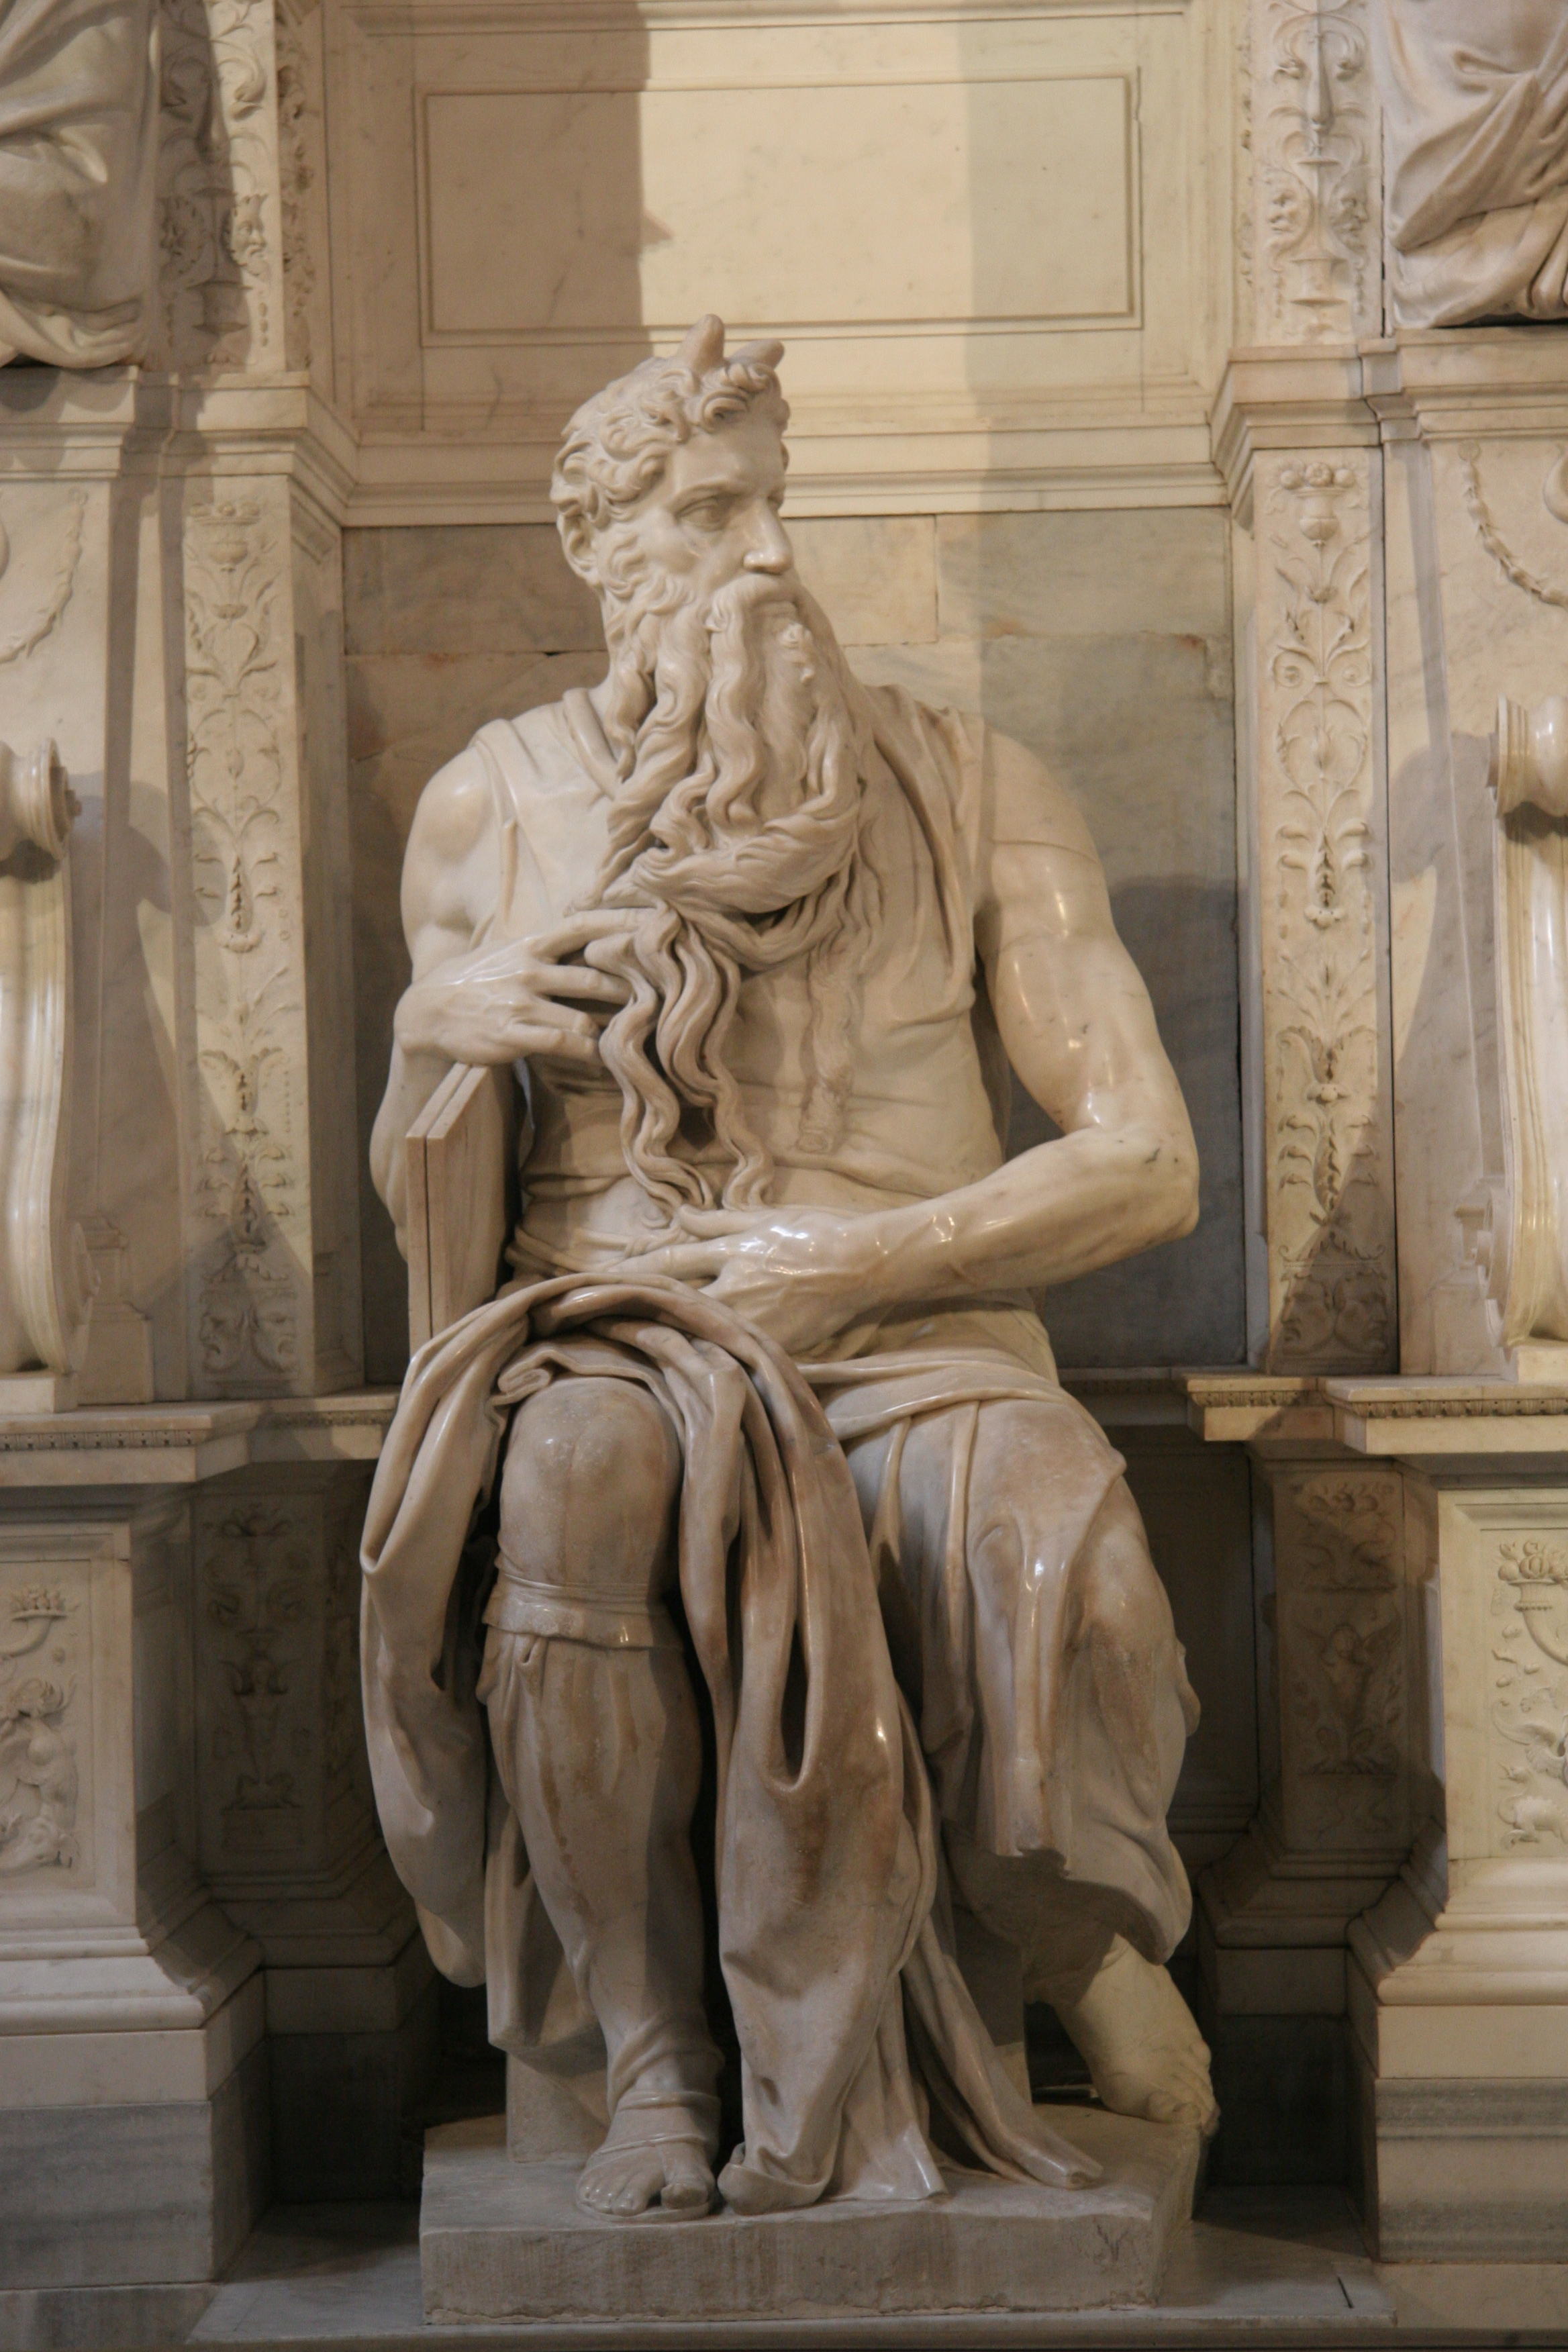 moses by michelangelo 1513 15 the core curriculum moses by michelangelo 1513 15